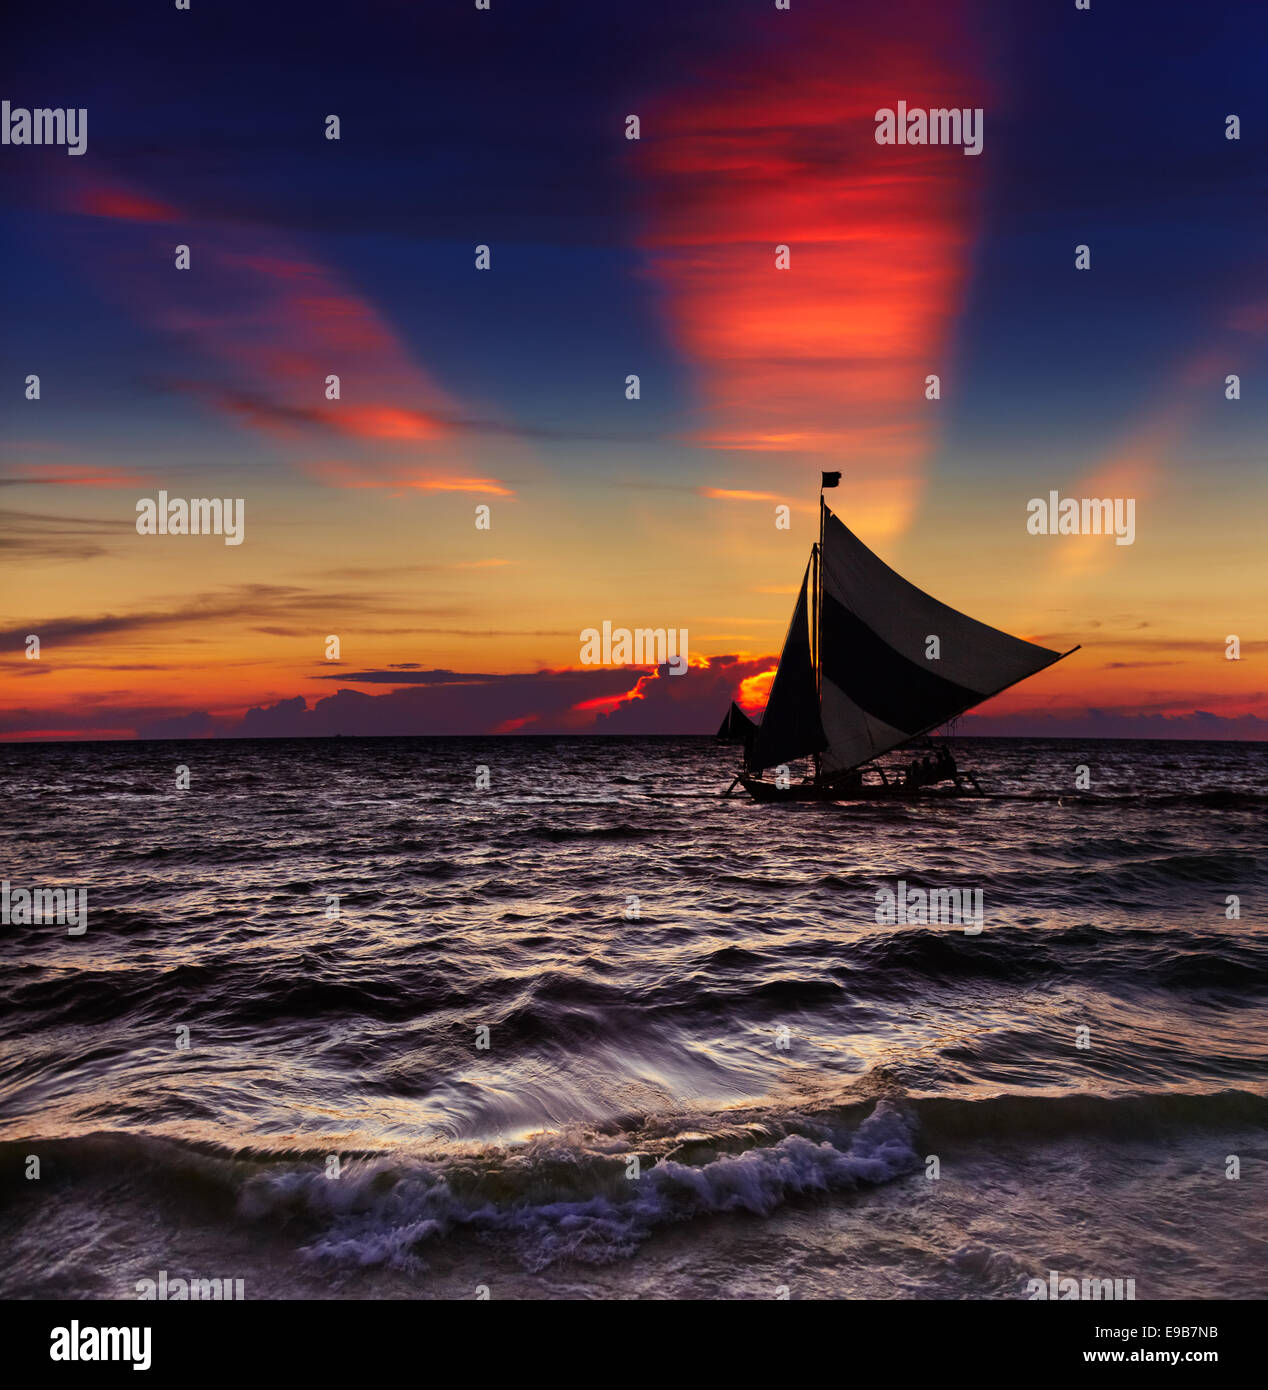 Tropical sunset with sailboat, Boracay, Philippines - Stock Image